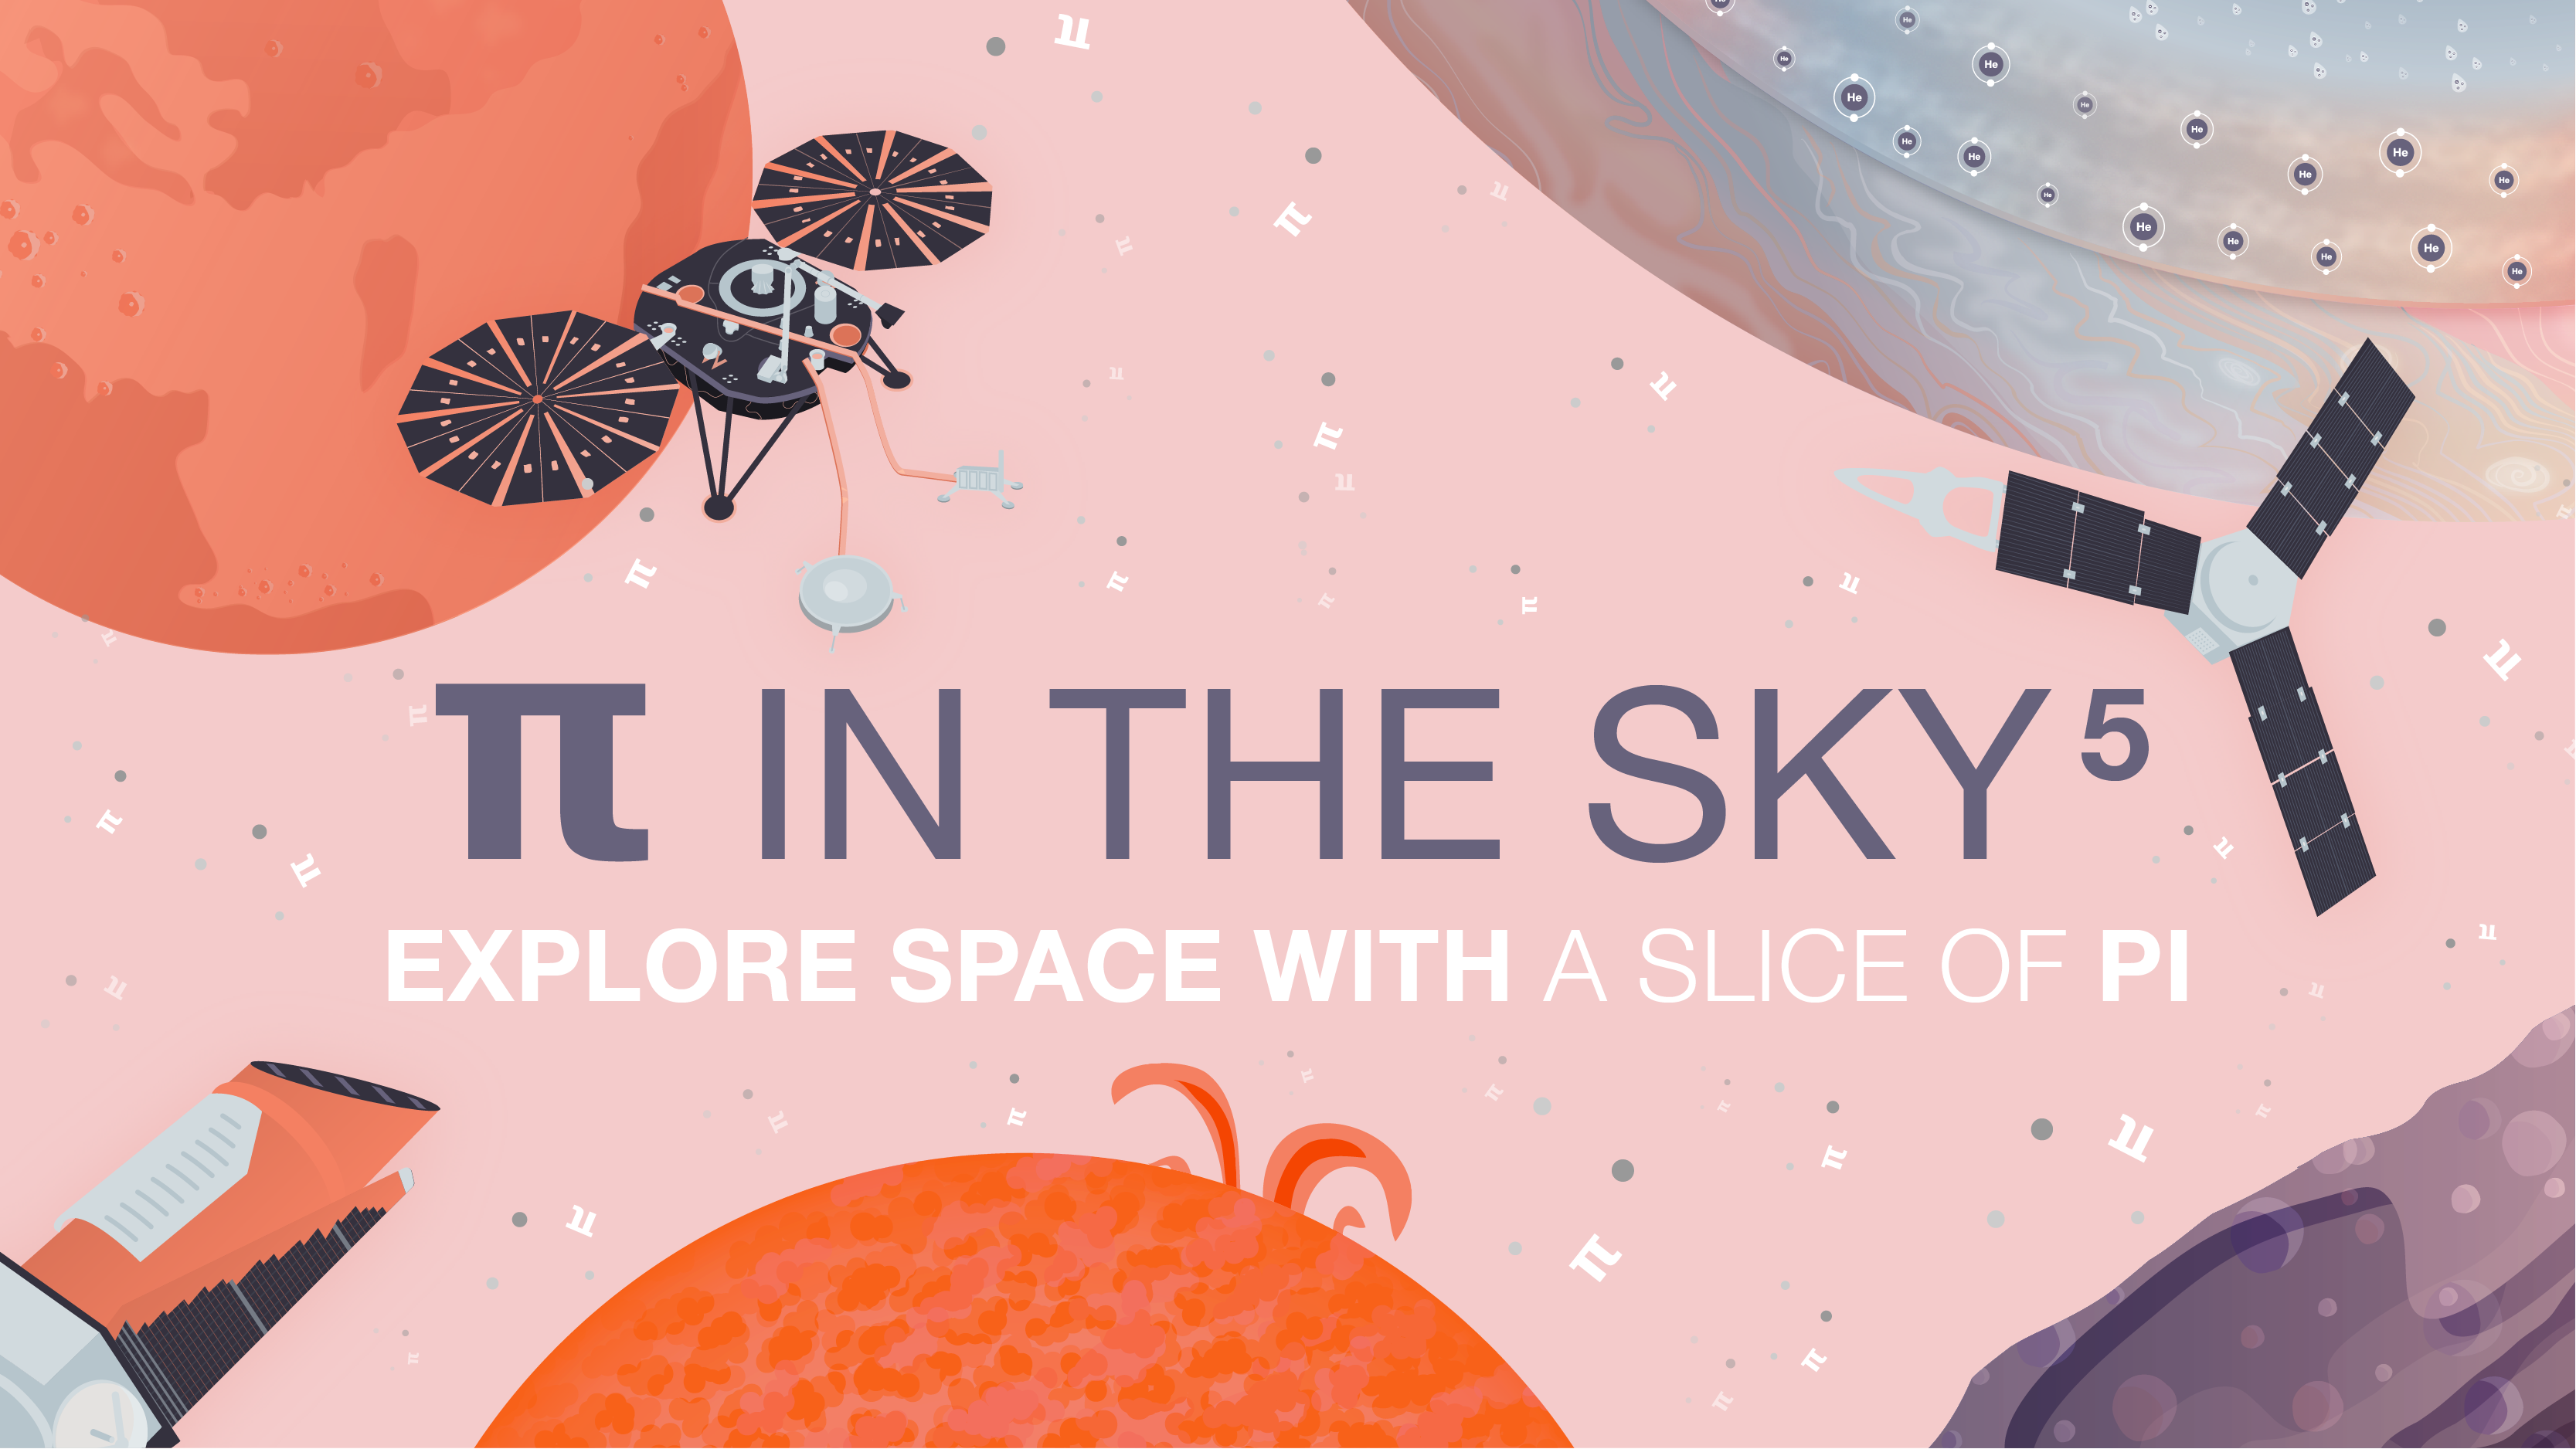 Pi in the Sky 5: Explore Space With A Slice of Pi